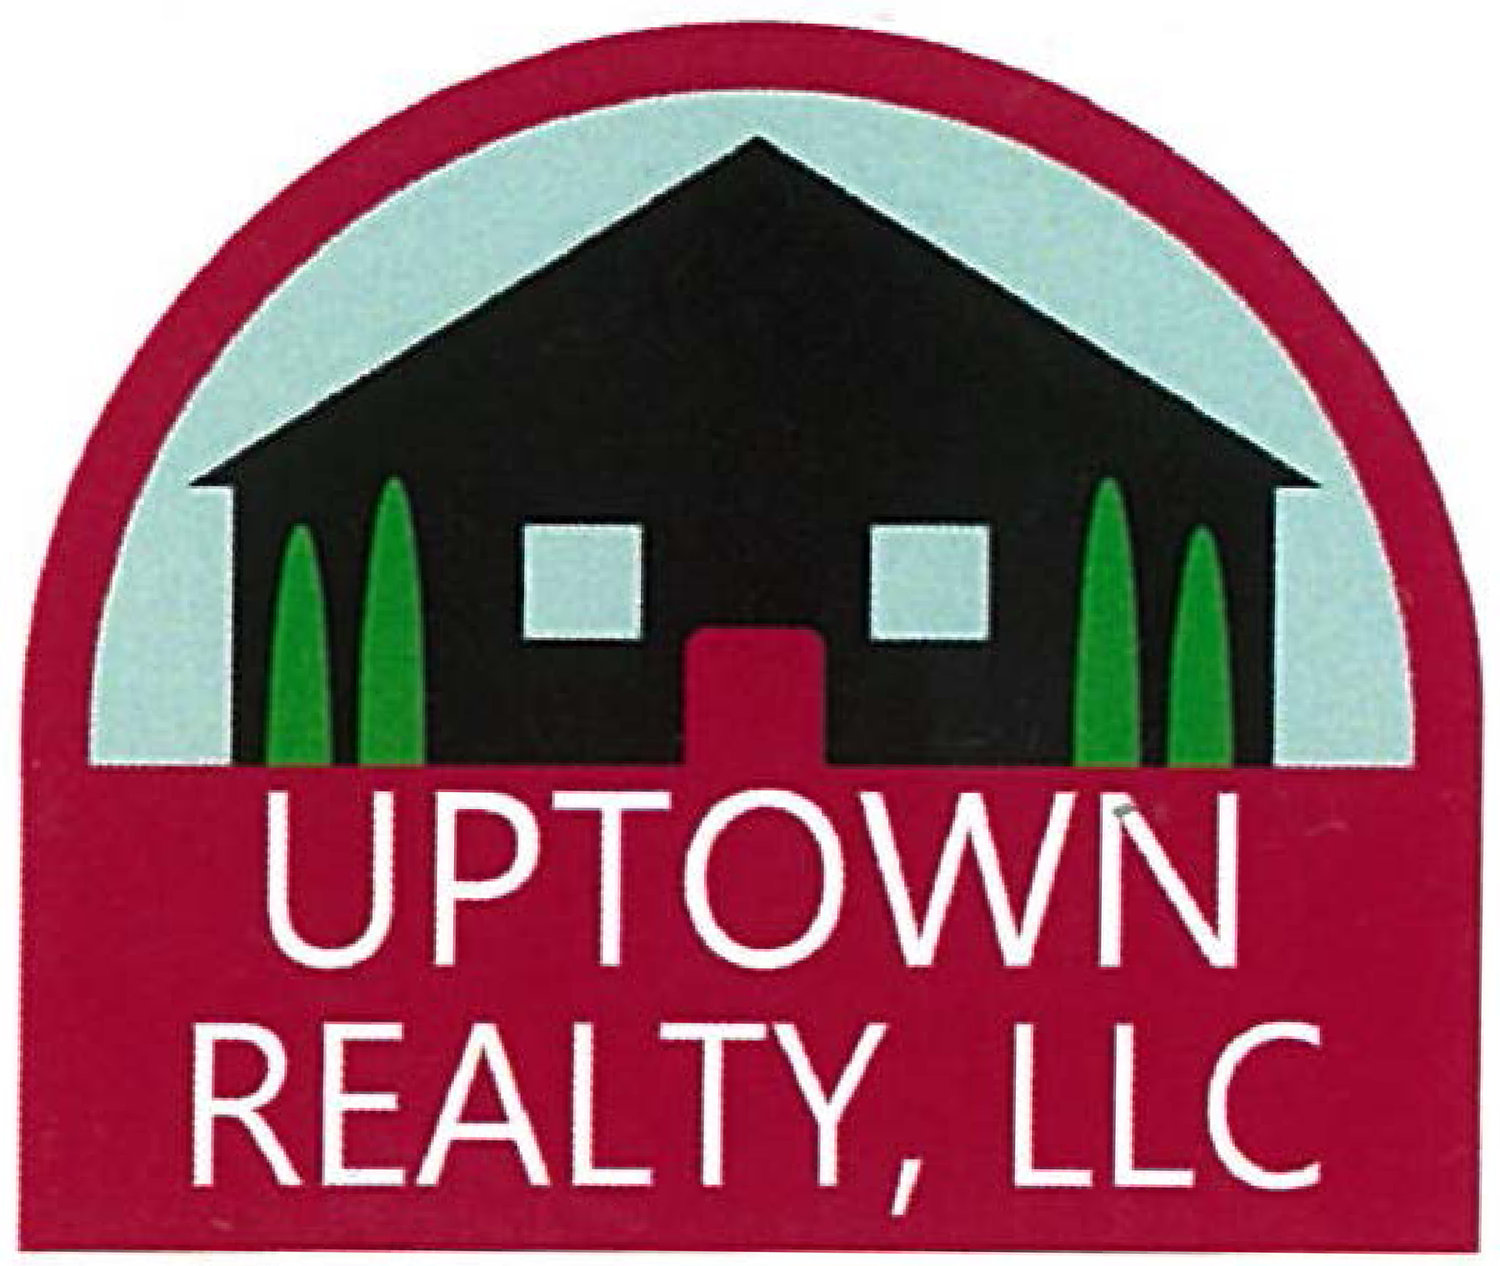 Uptown Realty LLC